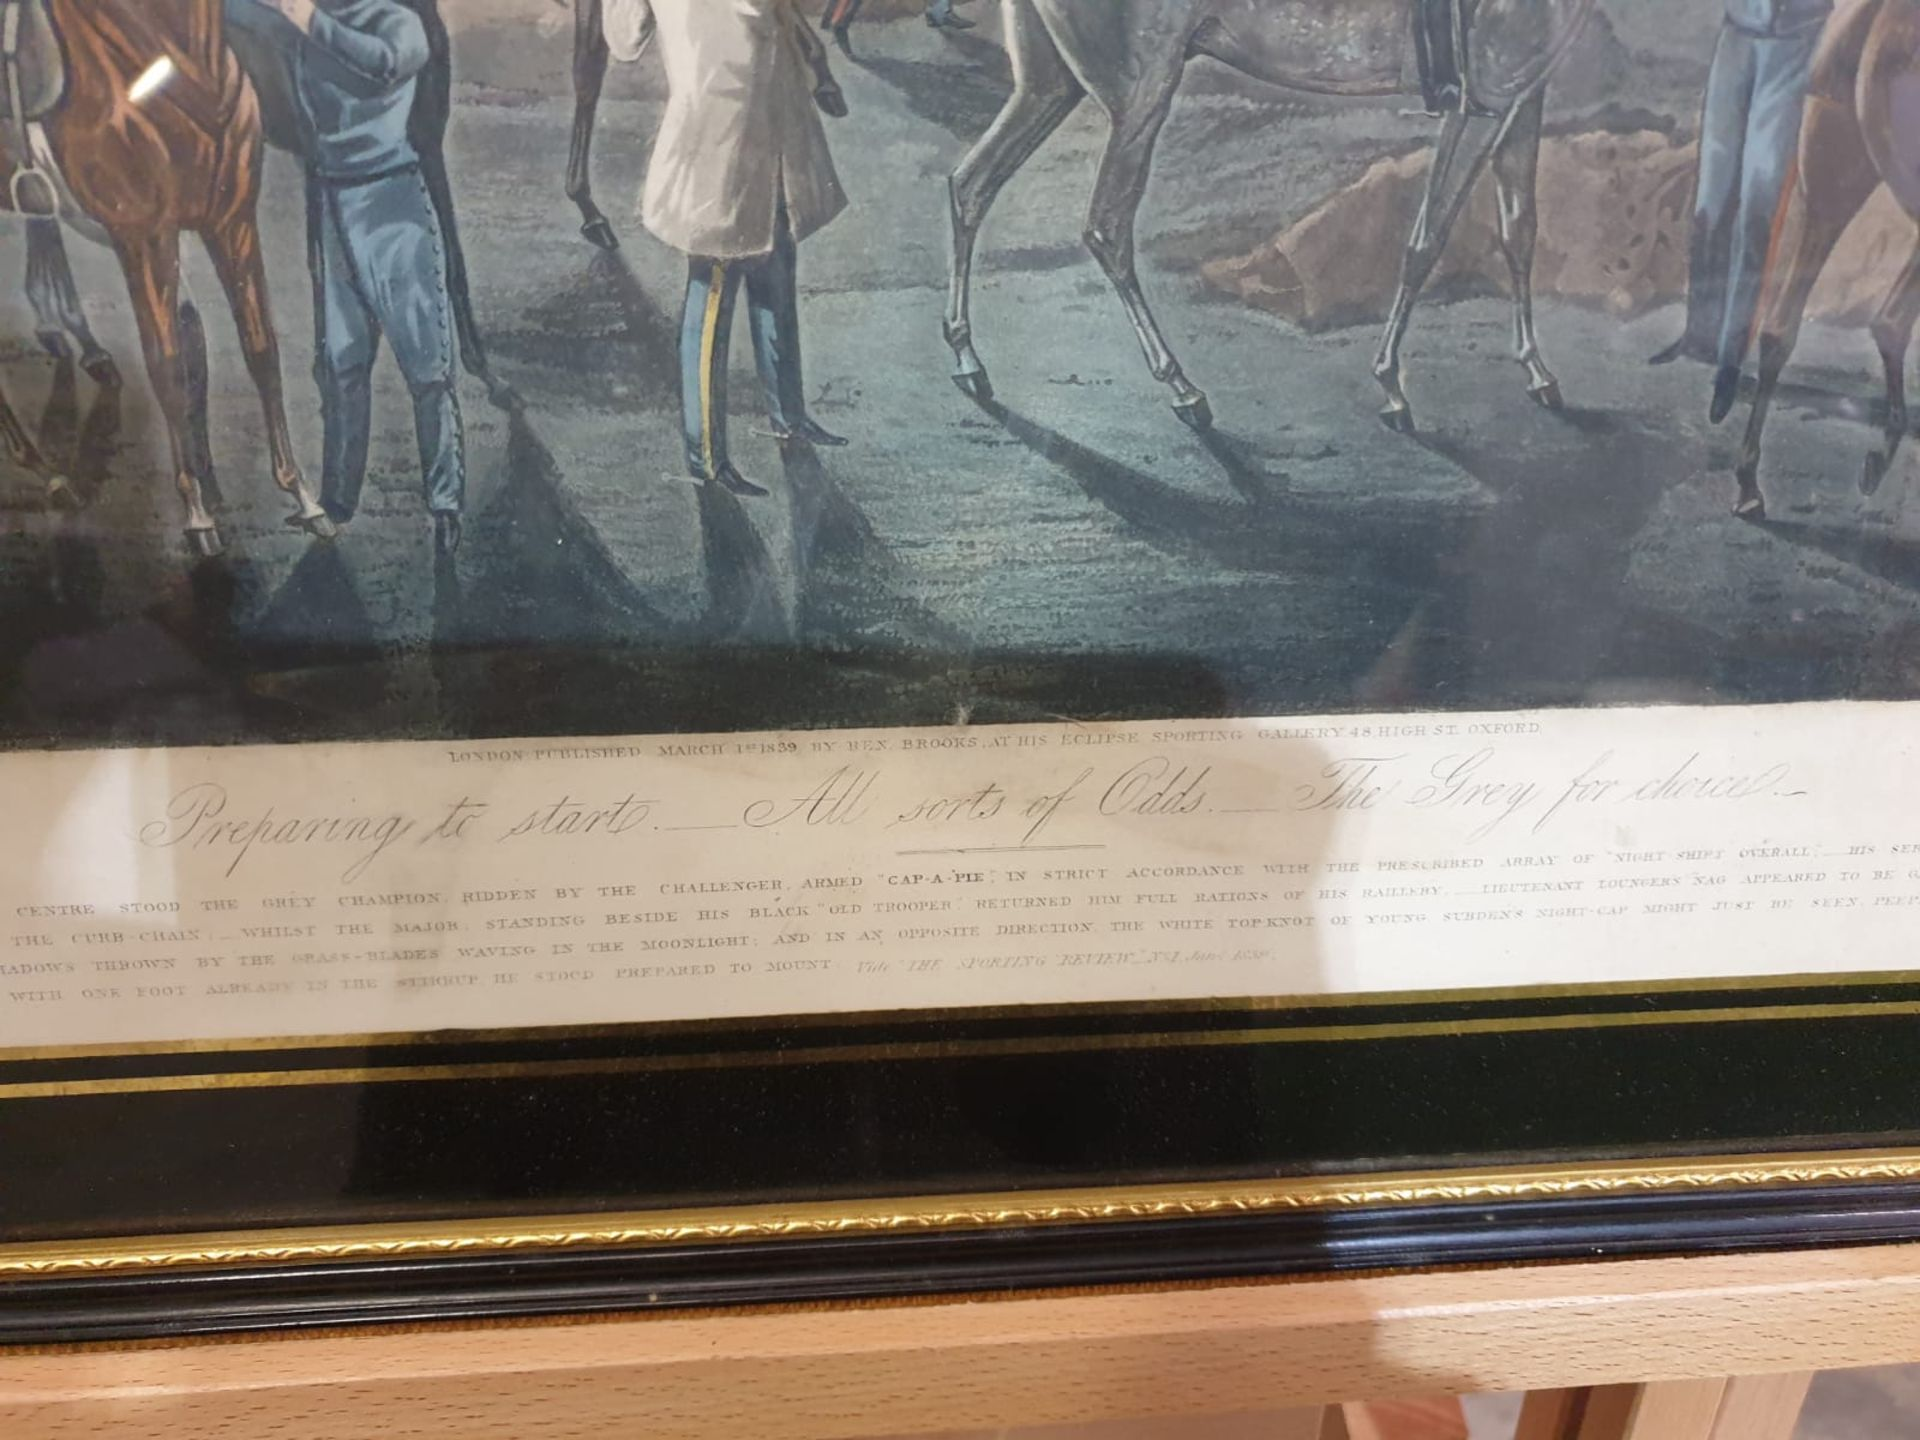 Framed vintage print .The First Steeplechase on Record - Ipswich, the watering place behind the - Image 5 of 6